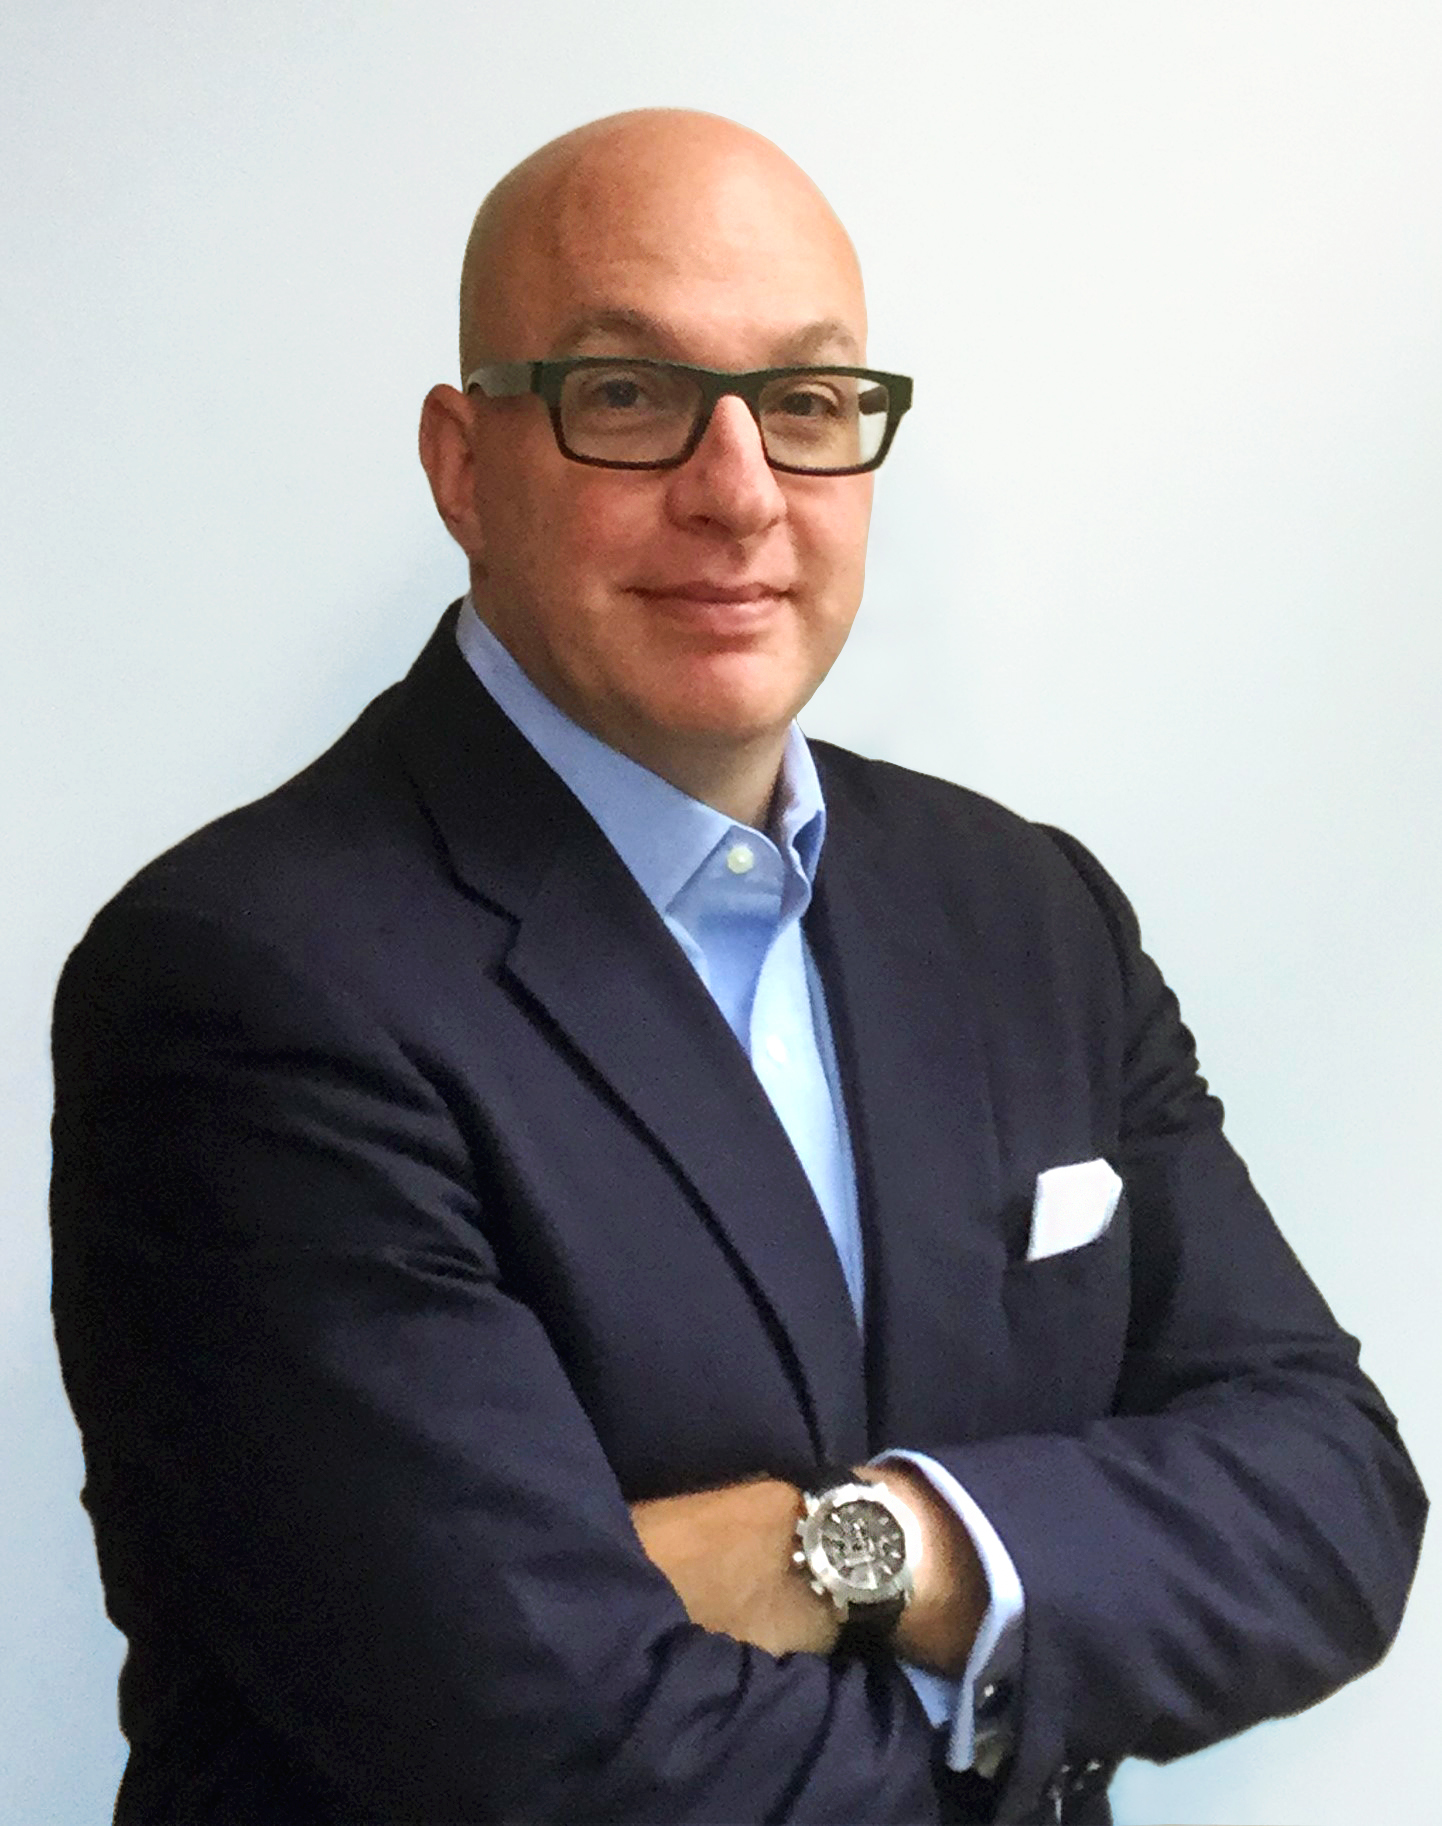 Fishbowl announces new CEO Jim Soss, a C-suite executive with over 20 years' expertise in digital marketing, big data and analytics. (Photo: Business Wire)